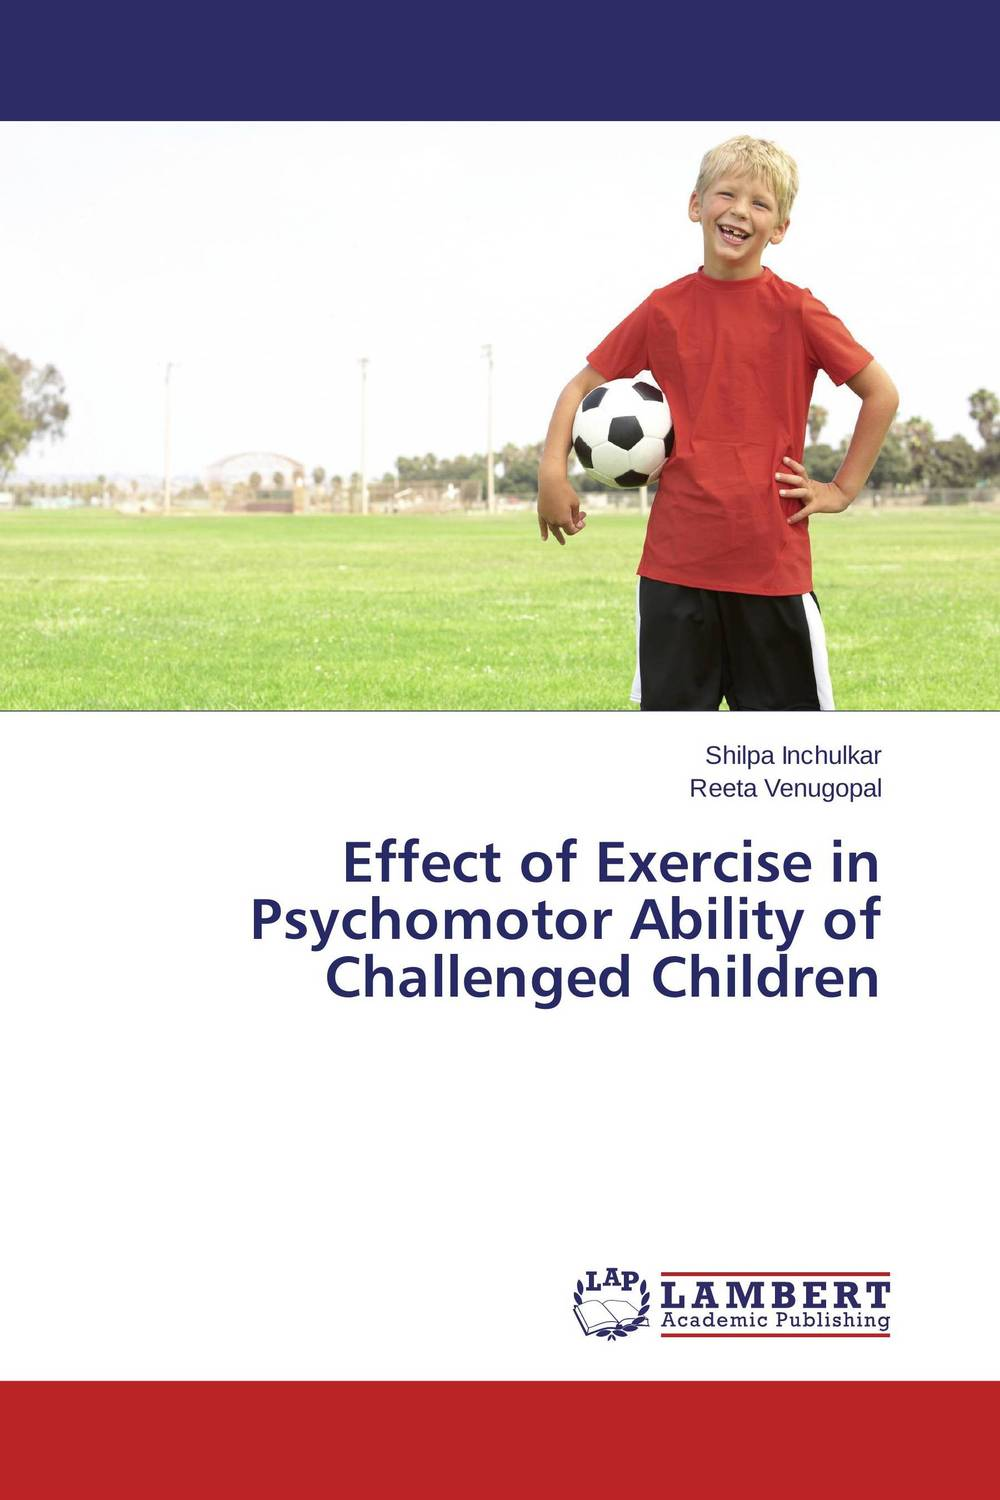 Effect of Exercise in Psychomotor Ability of Challenged Children